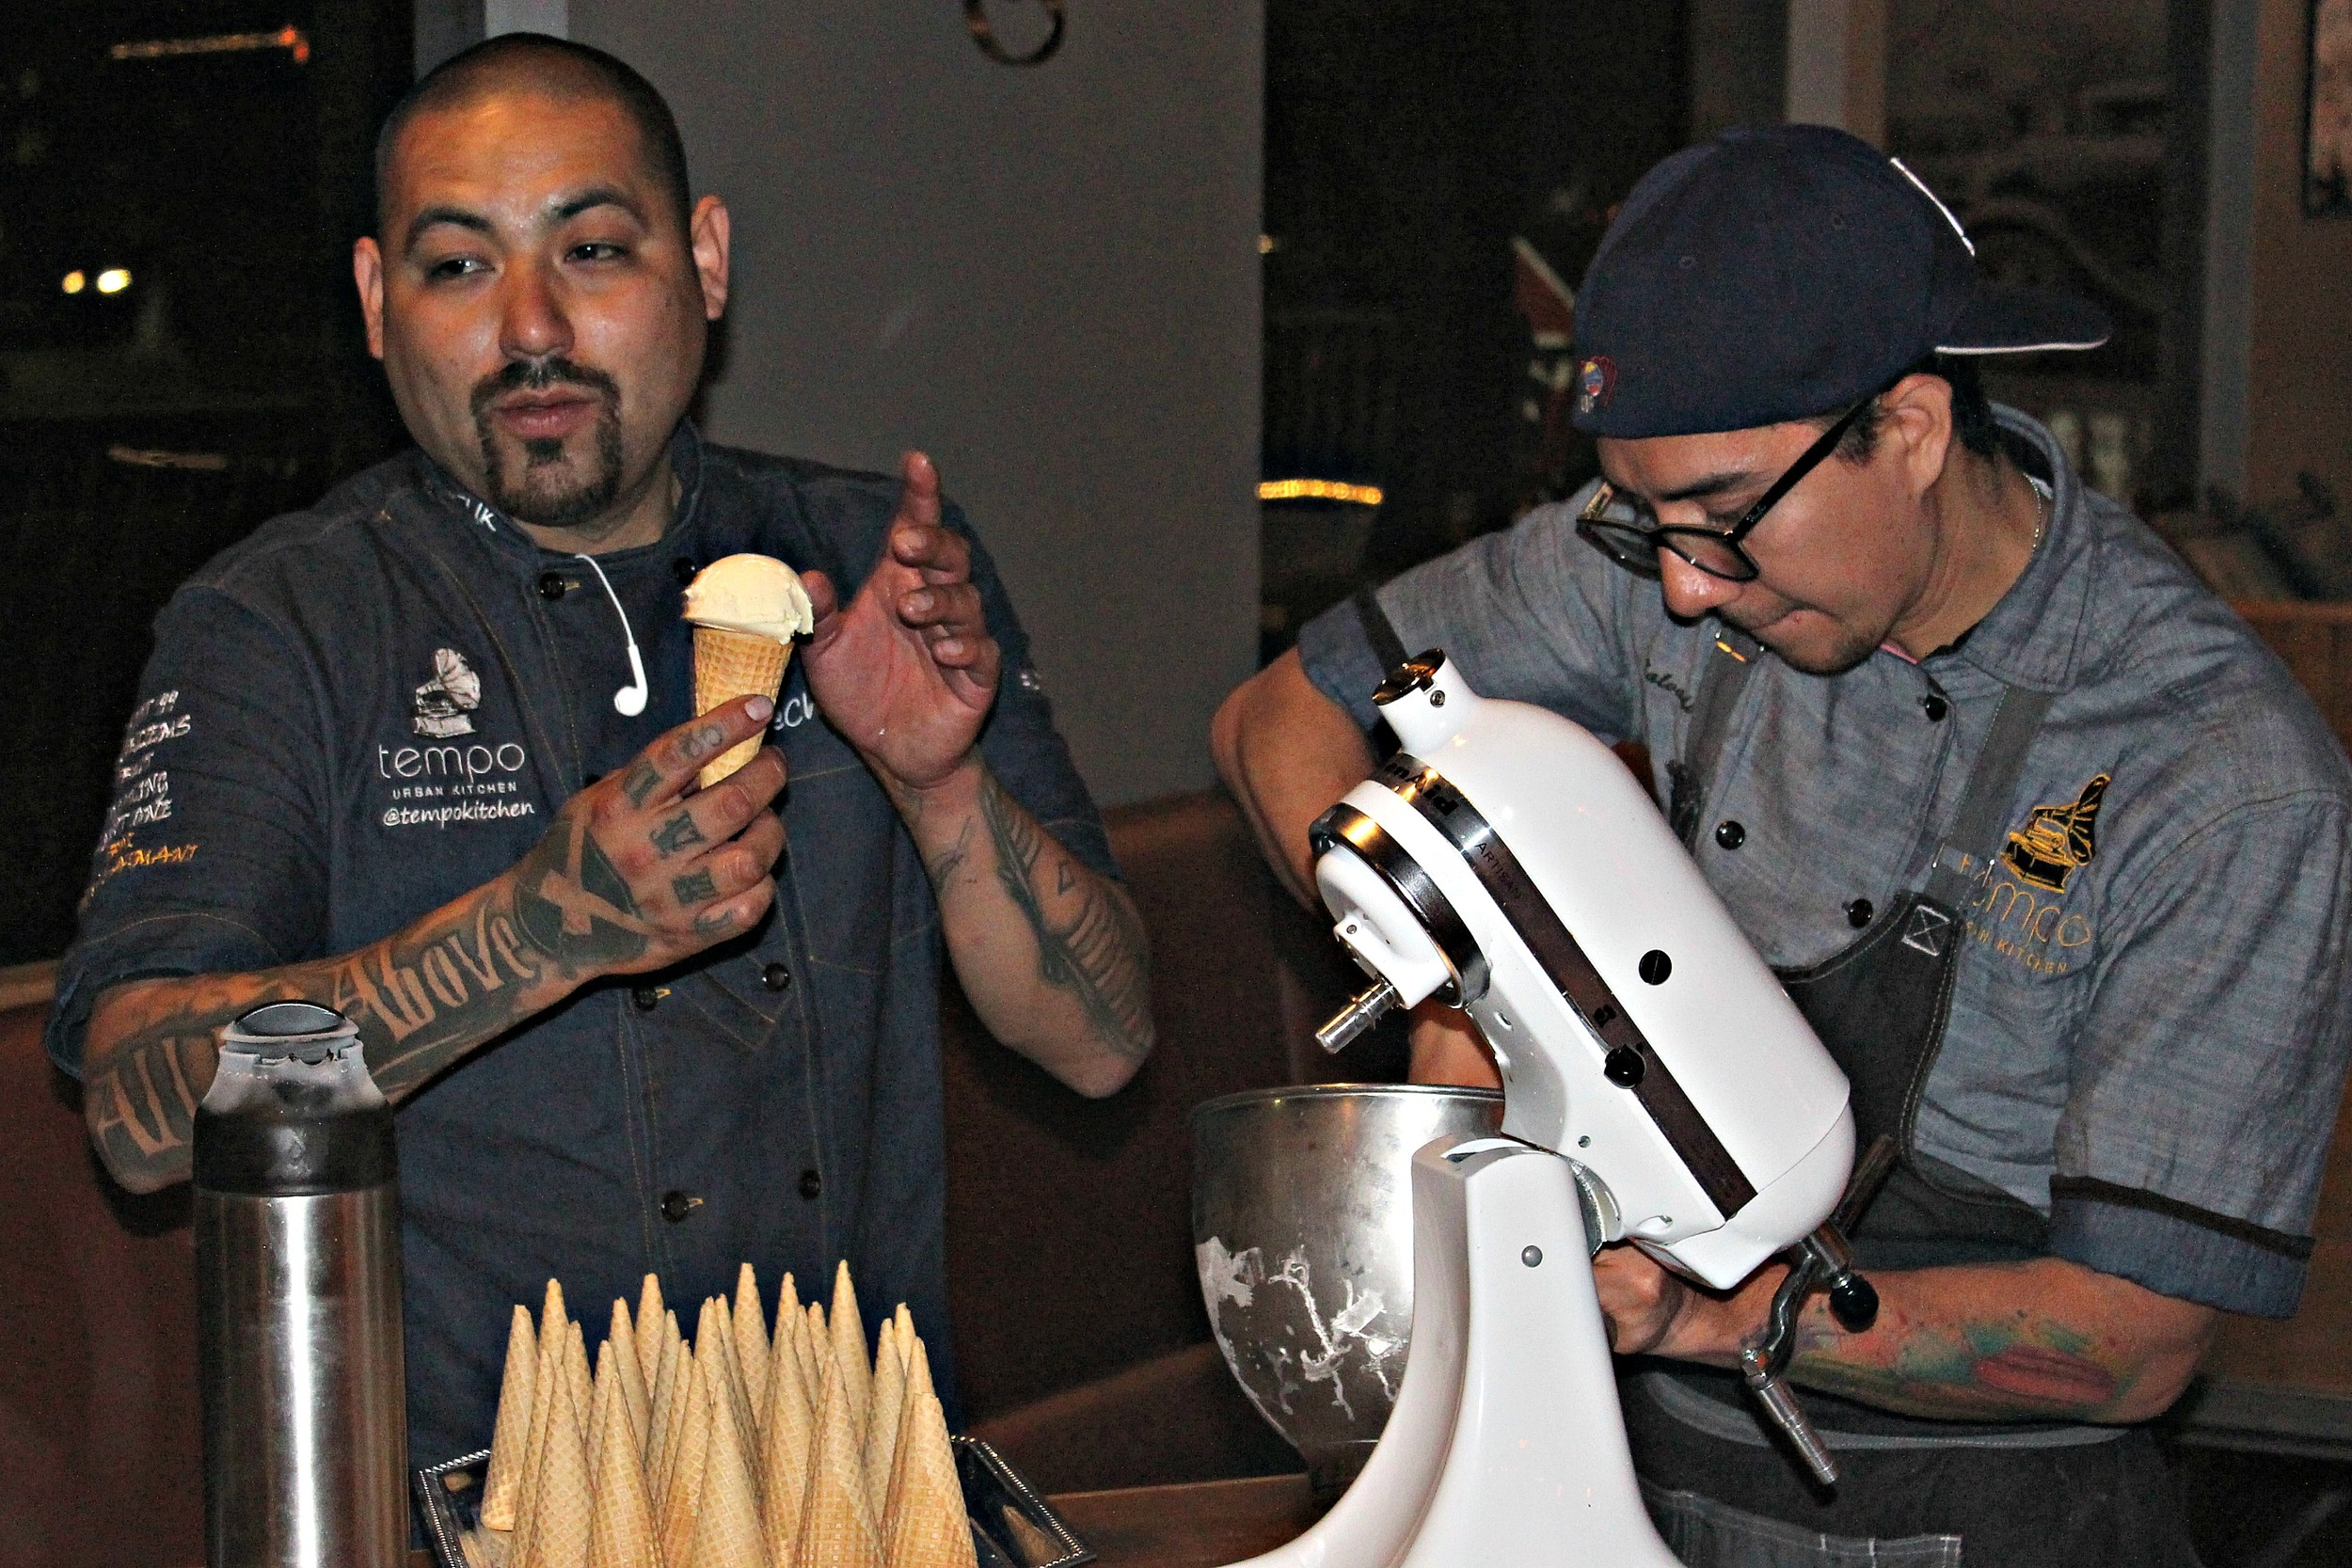 Chef Chris and Chef Sal preparing the Ice cream